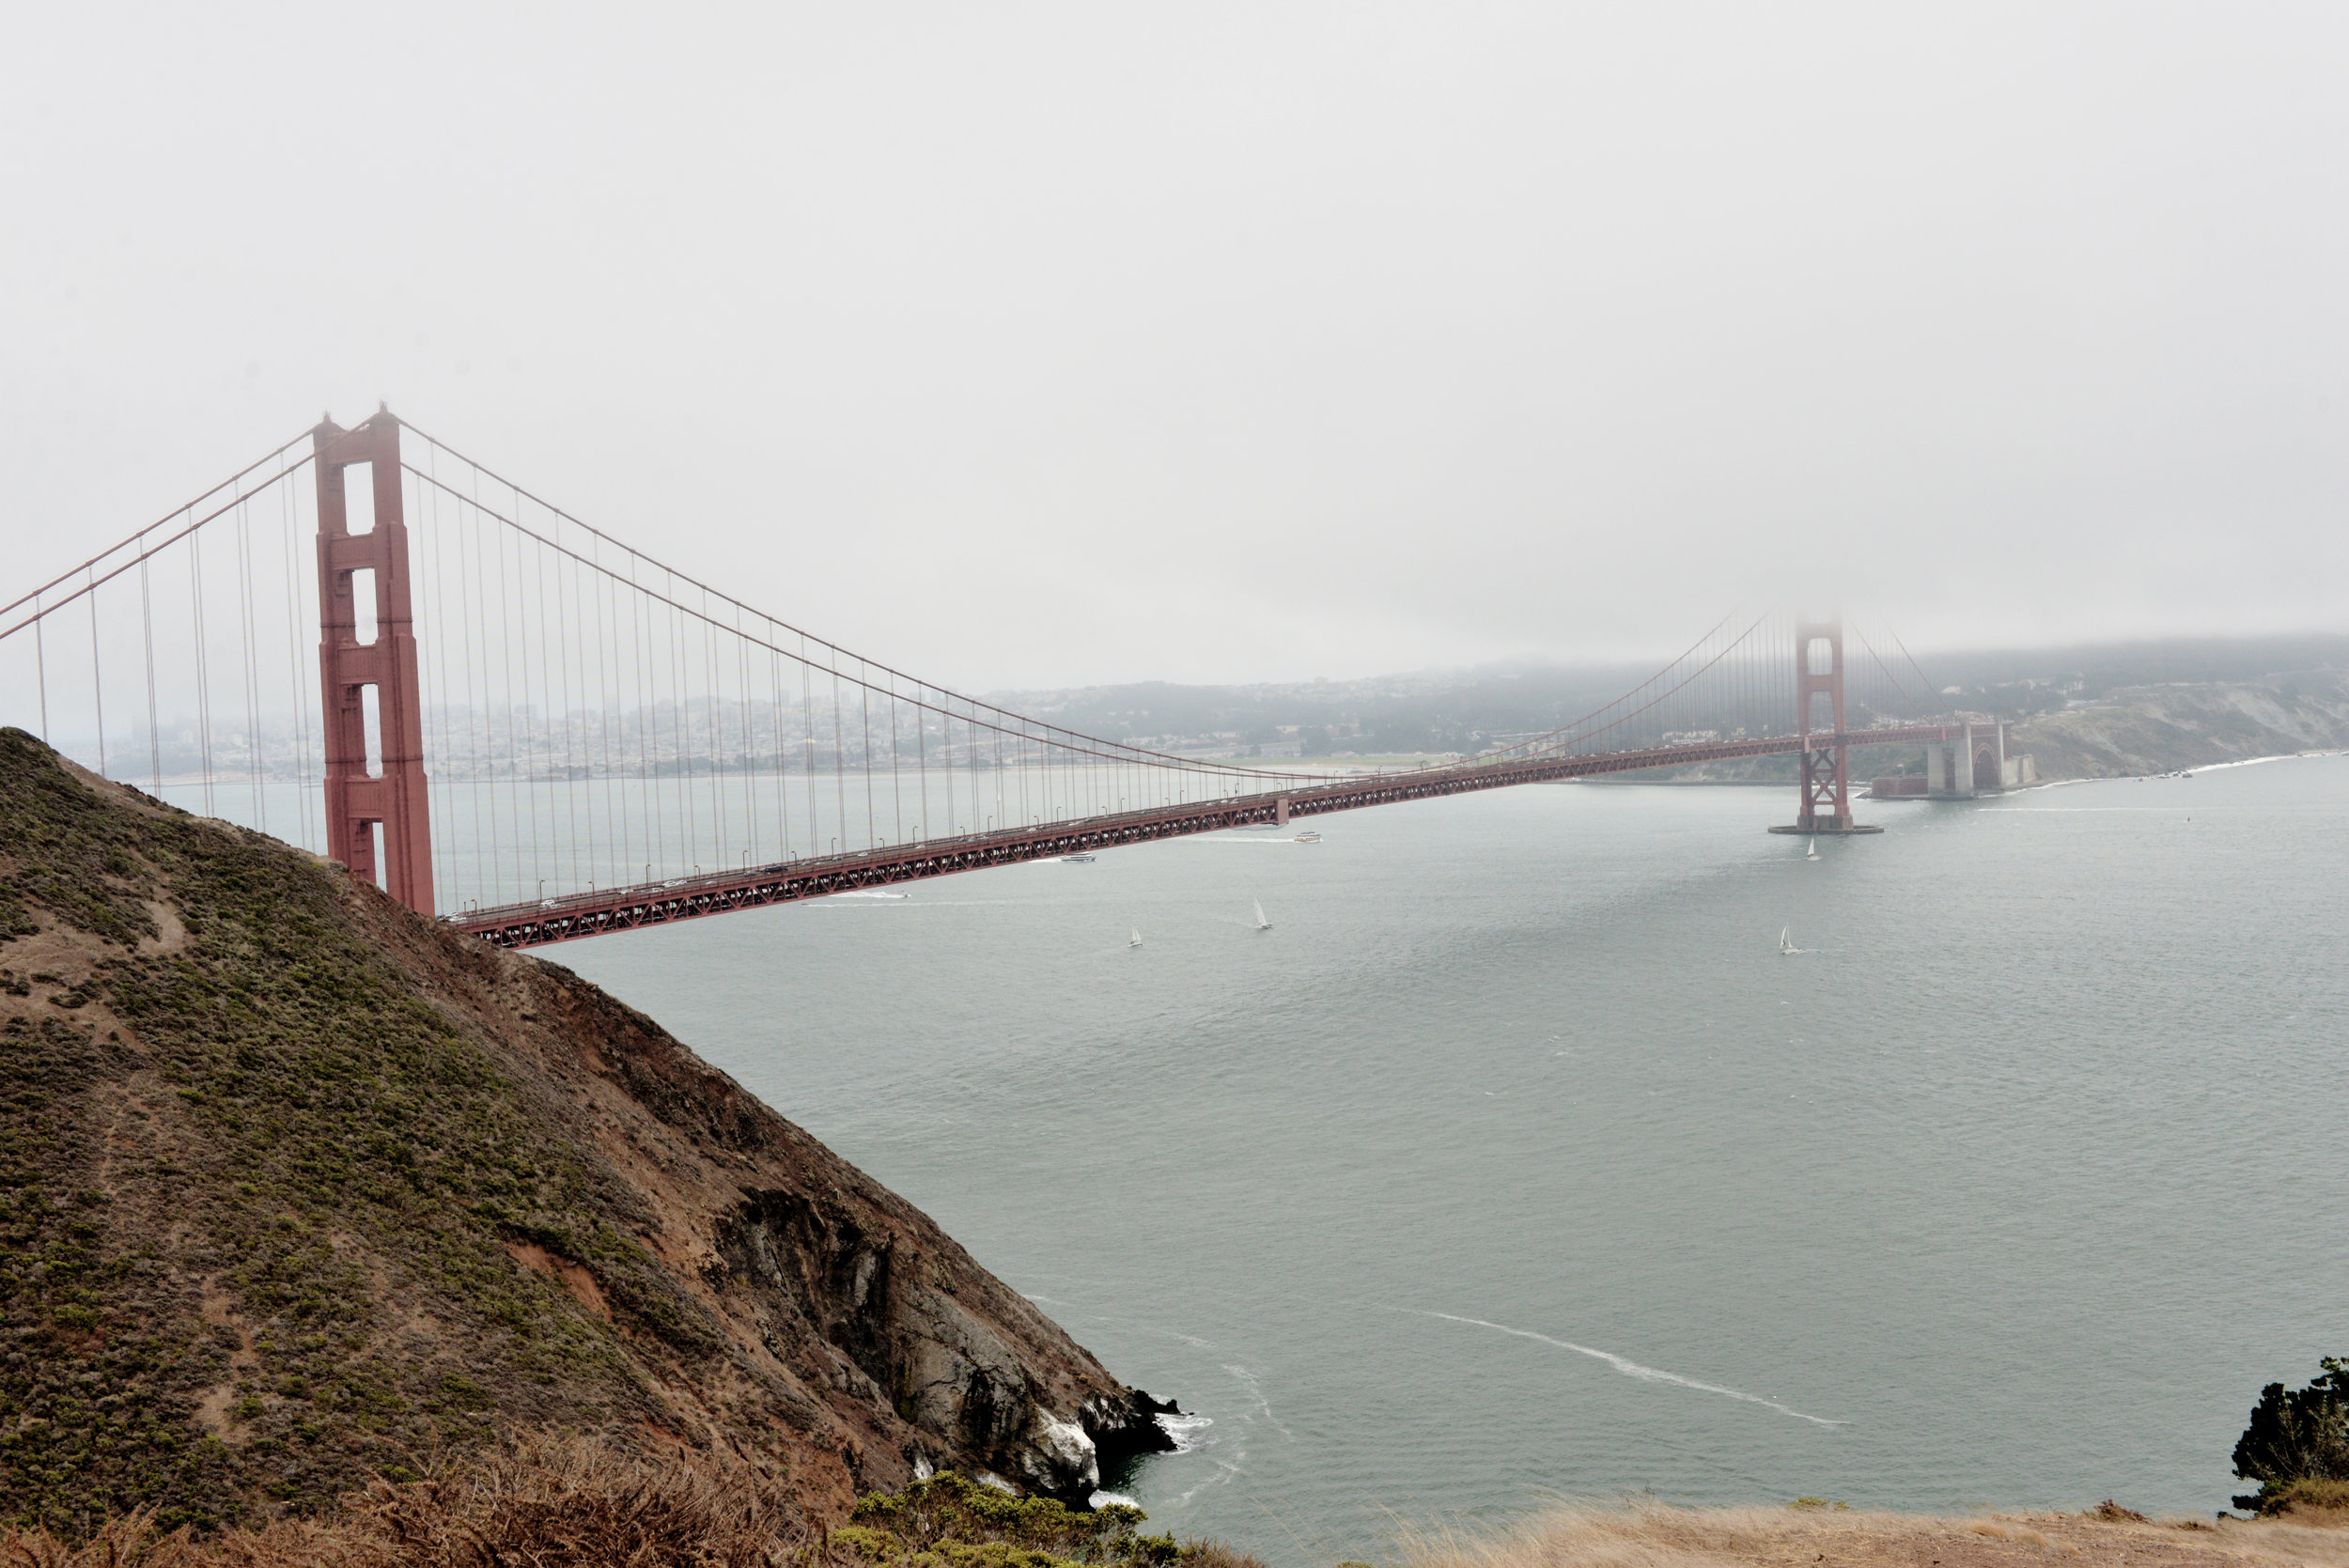 The-Look-Principle-I-Left-My-Heart-In-San-Francisco-Golden-Gate-Bridge-1.jpg